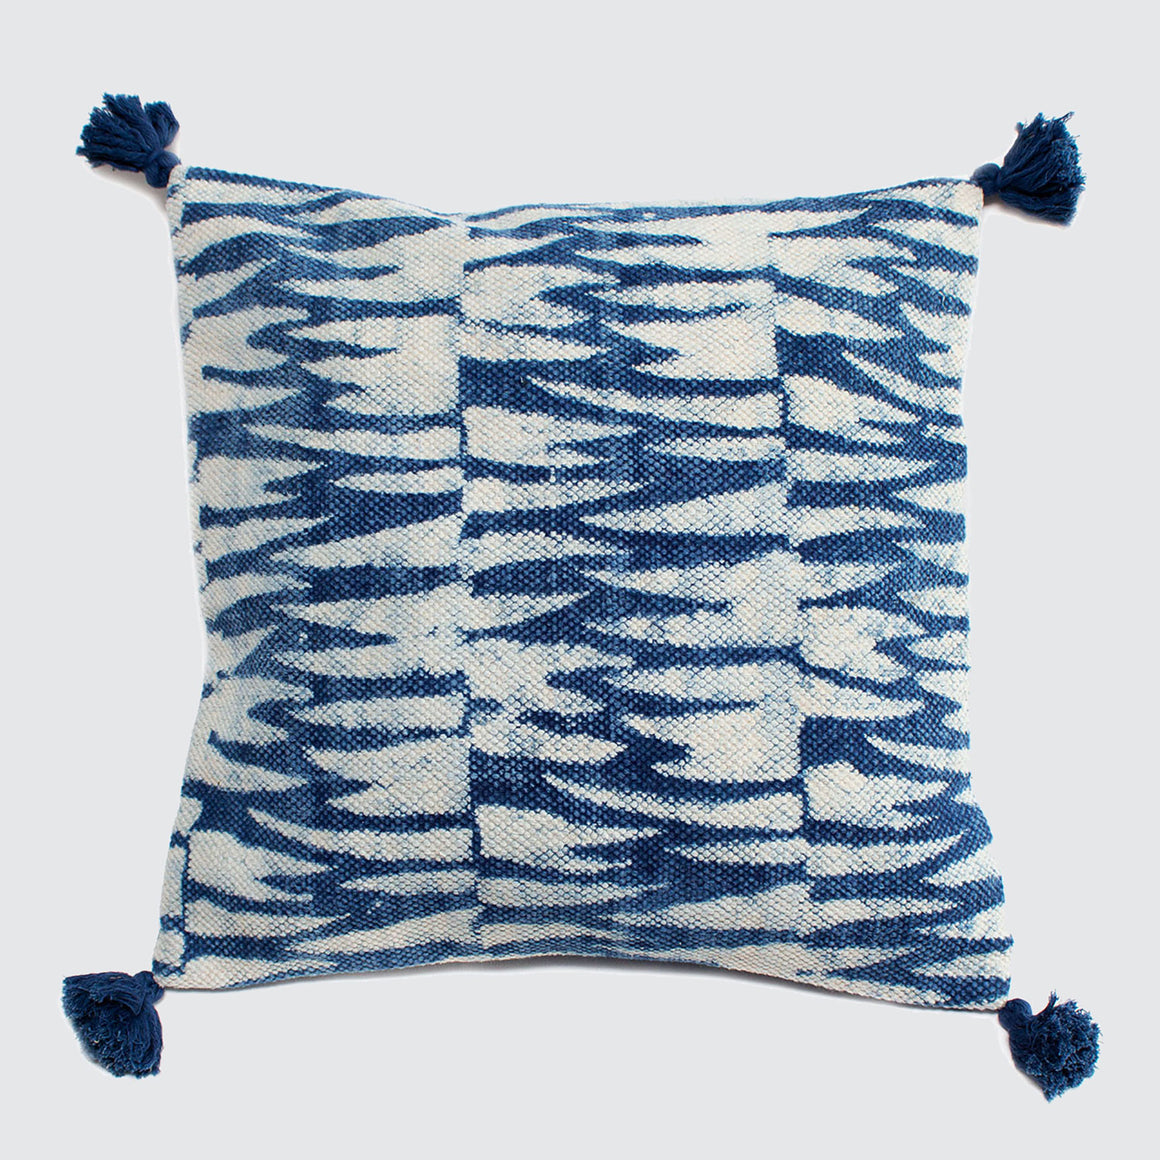 Indian Indigo Block Printed 45cm x 45cm Cushion Covers 'Tiger Stripes'